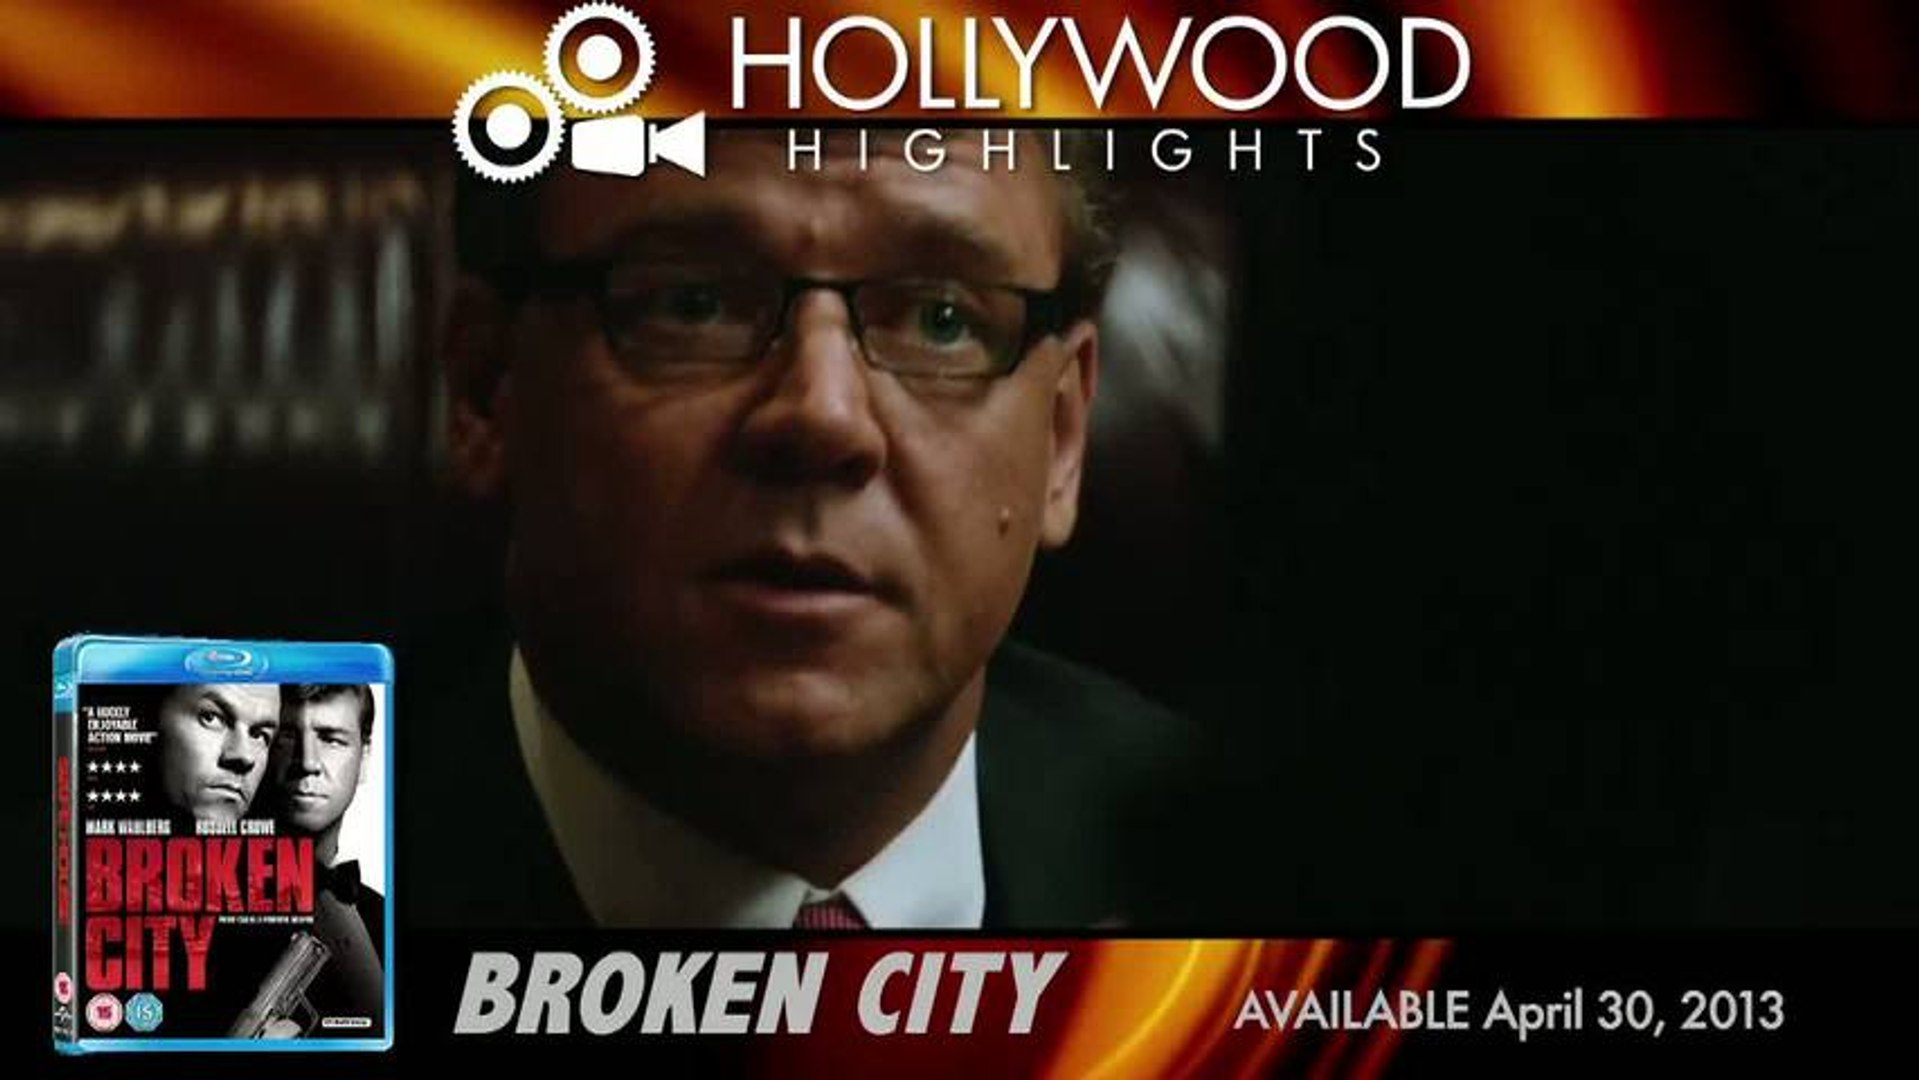 Mark Wahlberg & Russell Crowe in the Hollywood Highlights DVD-Blu-Ray Pick of the Week